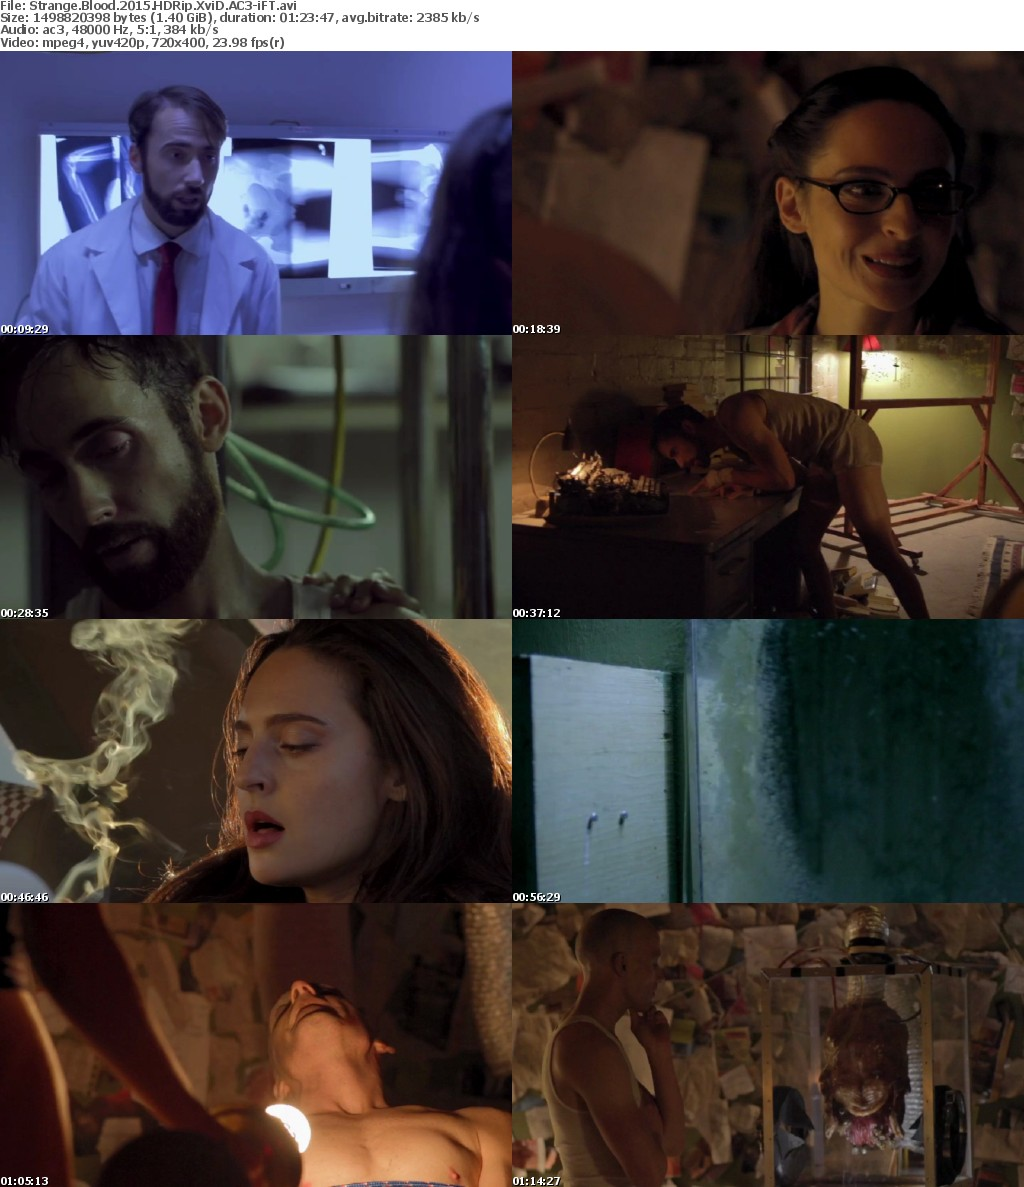 Strange Blood 2015 HDRip XviD AC3-iFT